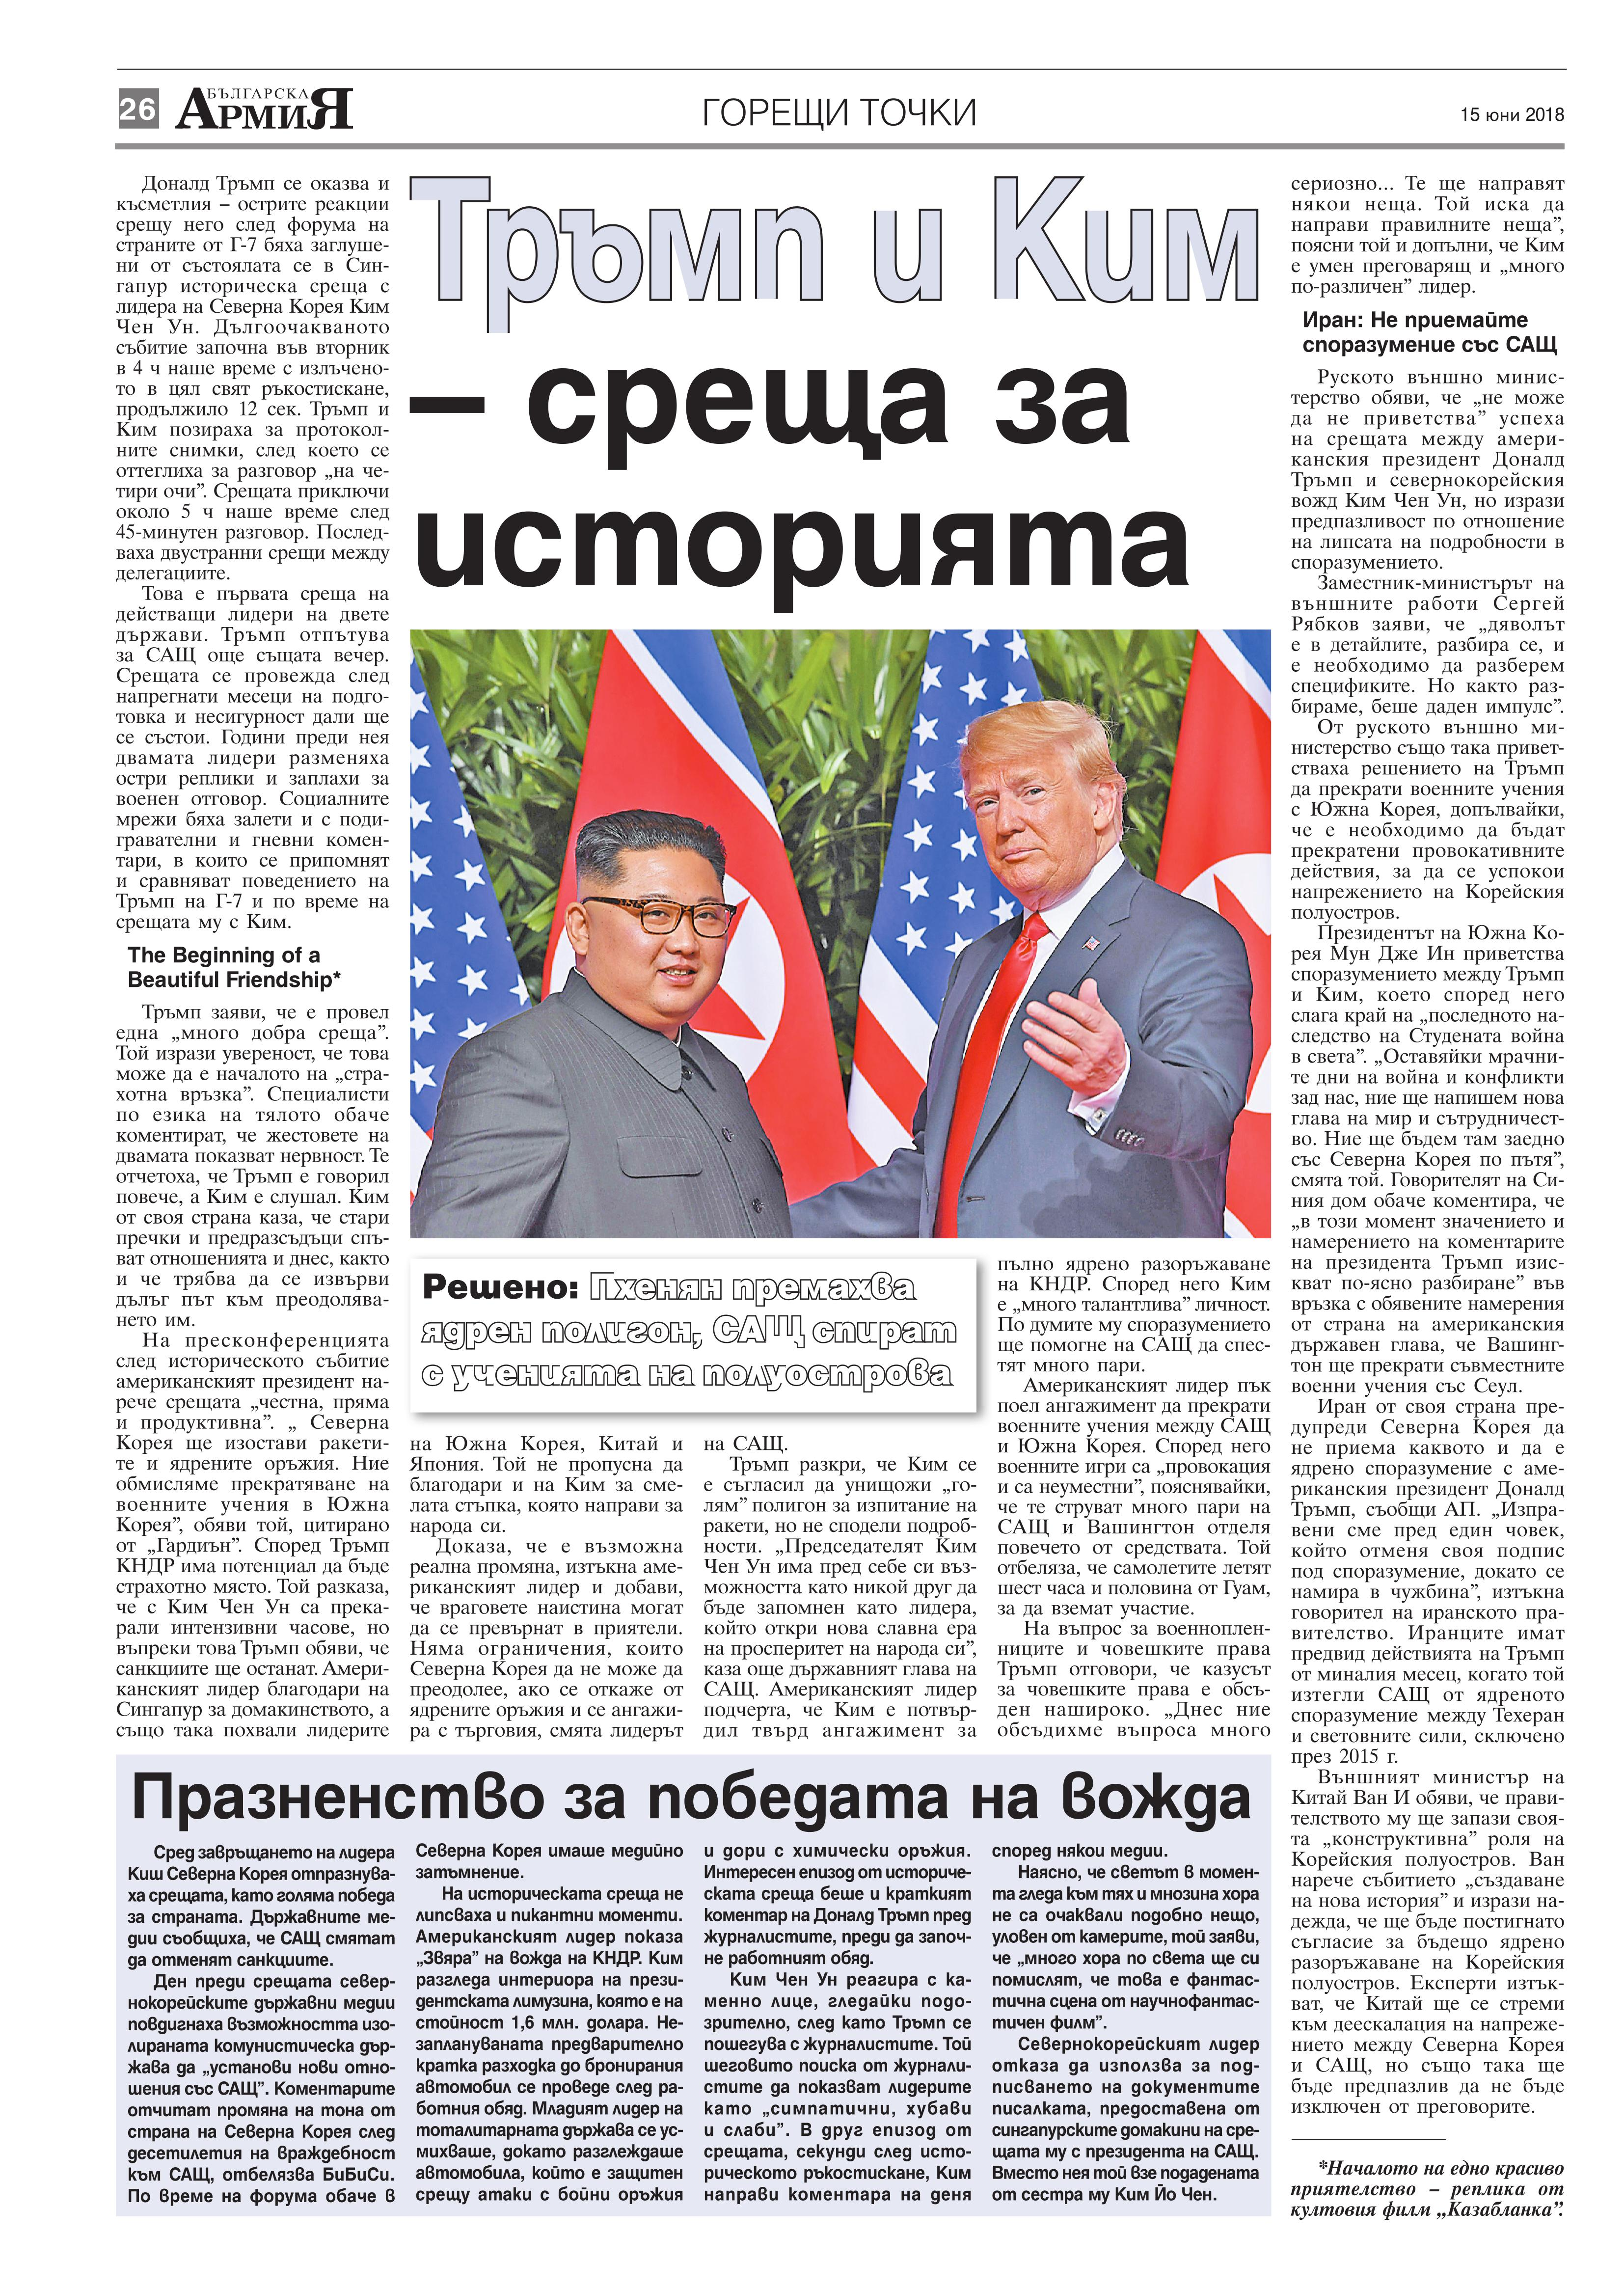 http://armymedia.bg/wp-content/uploads/2015/06/26.page1_-48.jpg